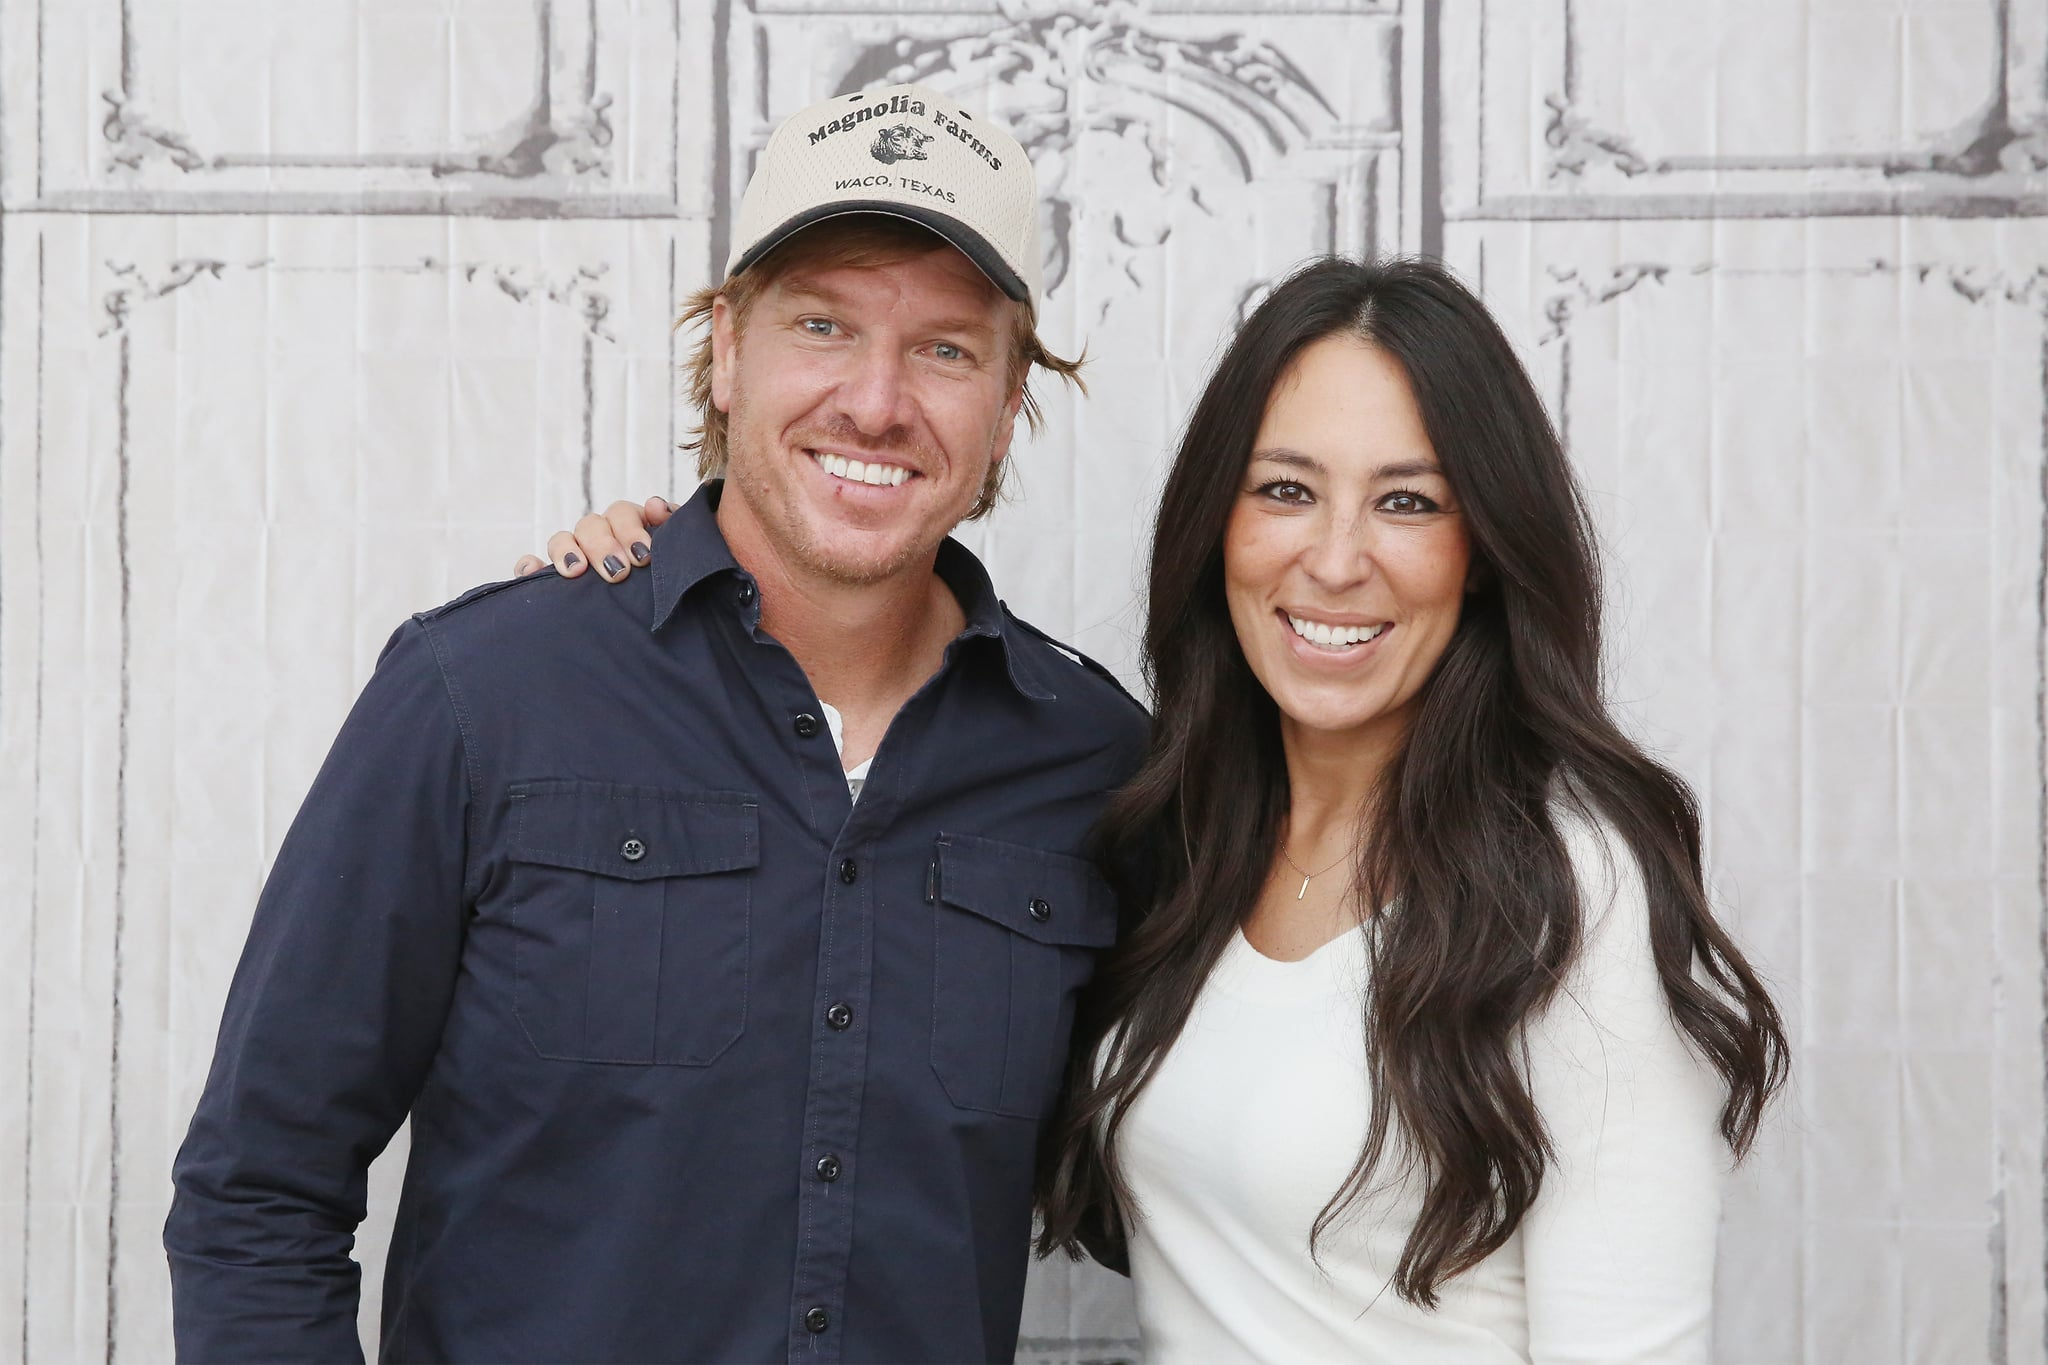 NEW YORK, NY - OCTOBER 19: The Build Series presents Chip Gaines and Joanna Gaines to discuss their new book